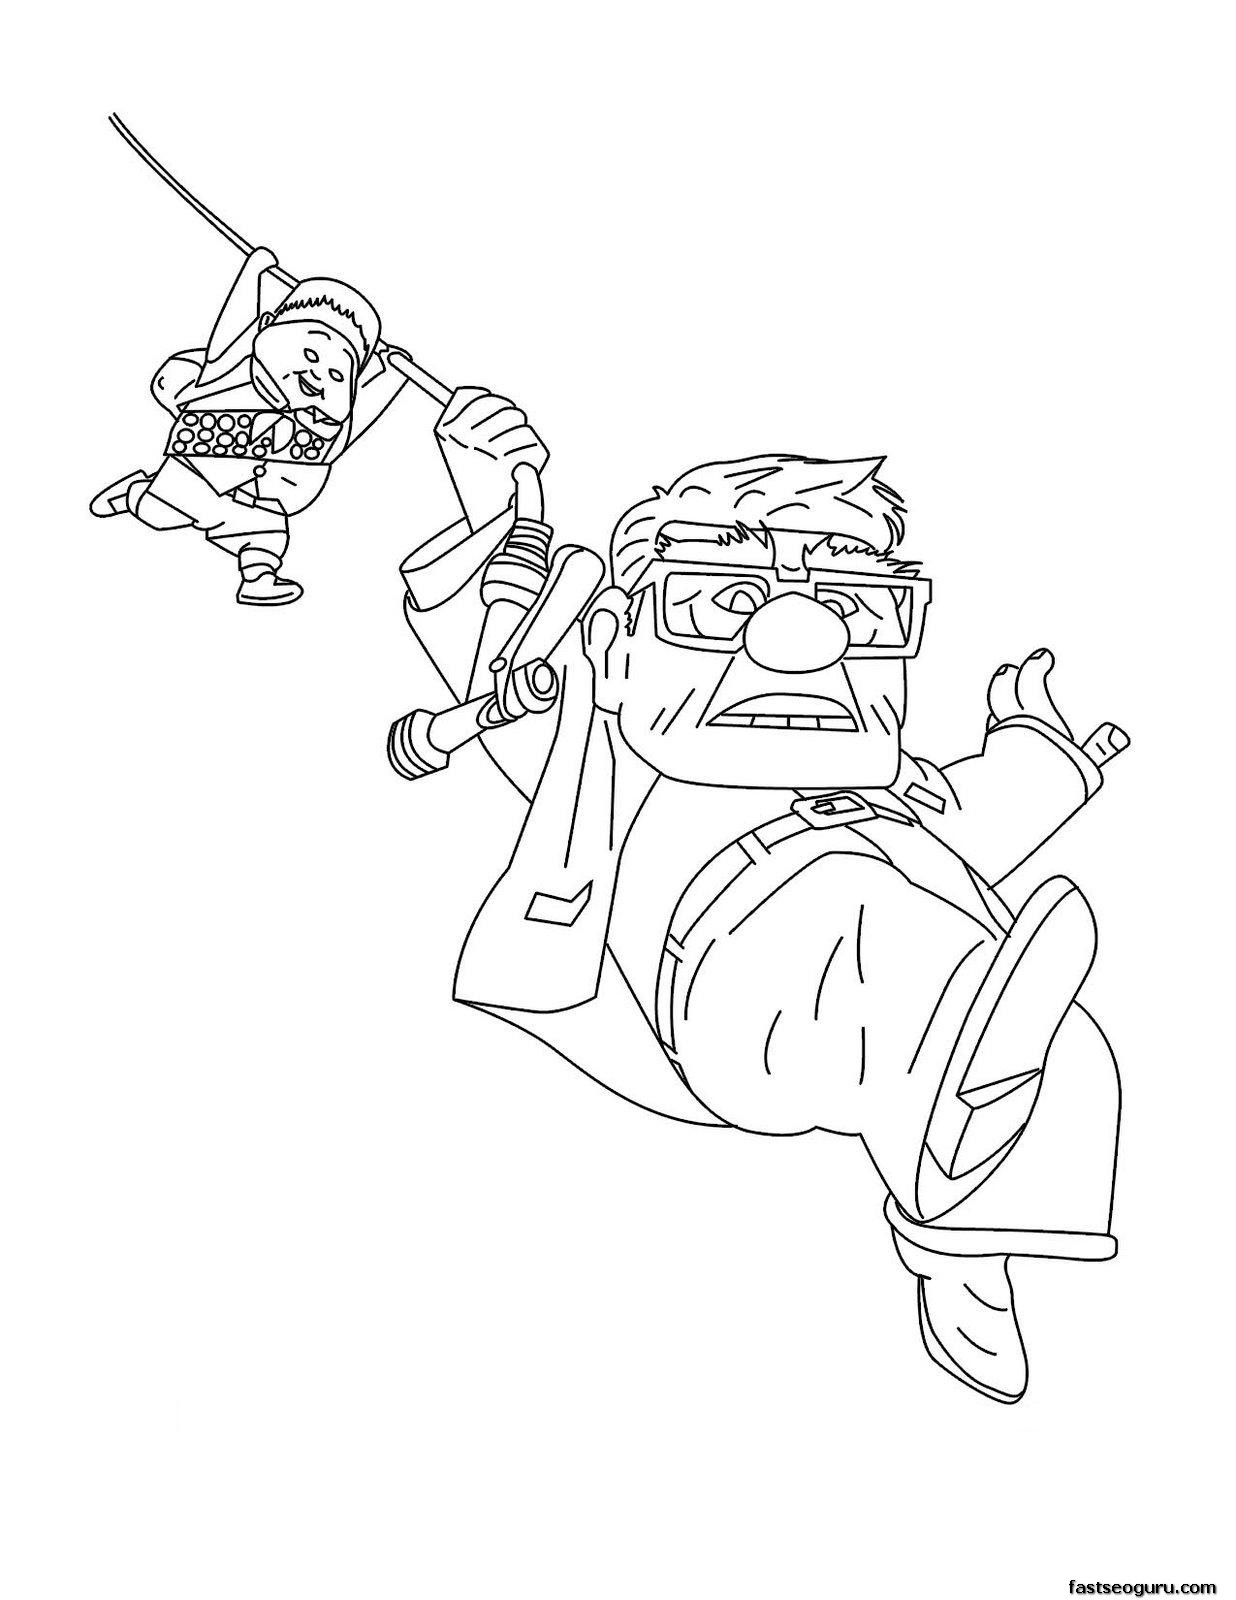 Russell from up coloring pages ~ Printable Disney up Carl Fredricksen,Russell coloring pages